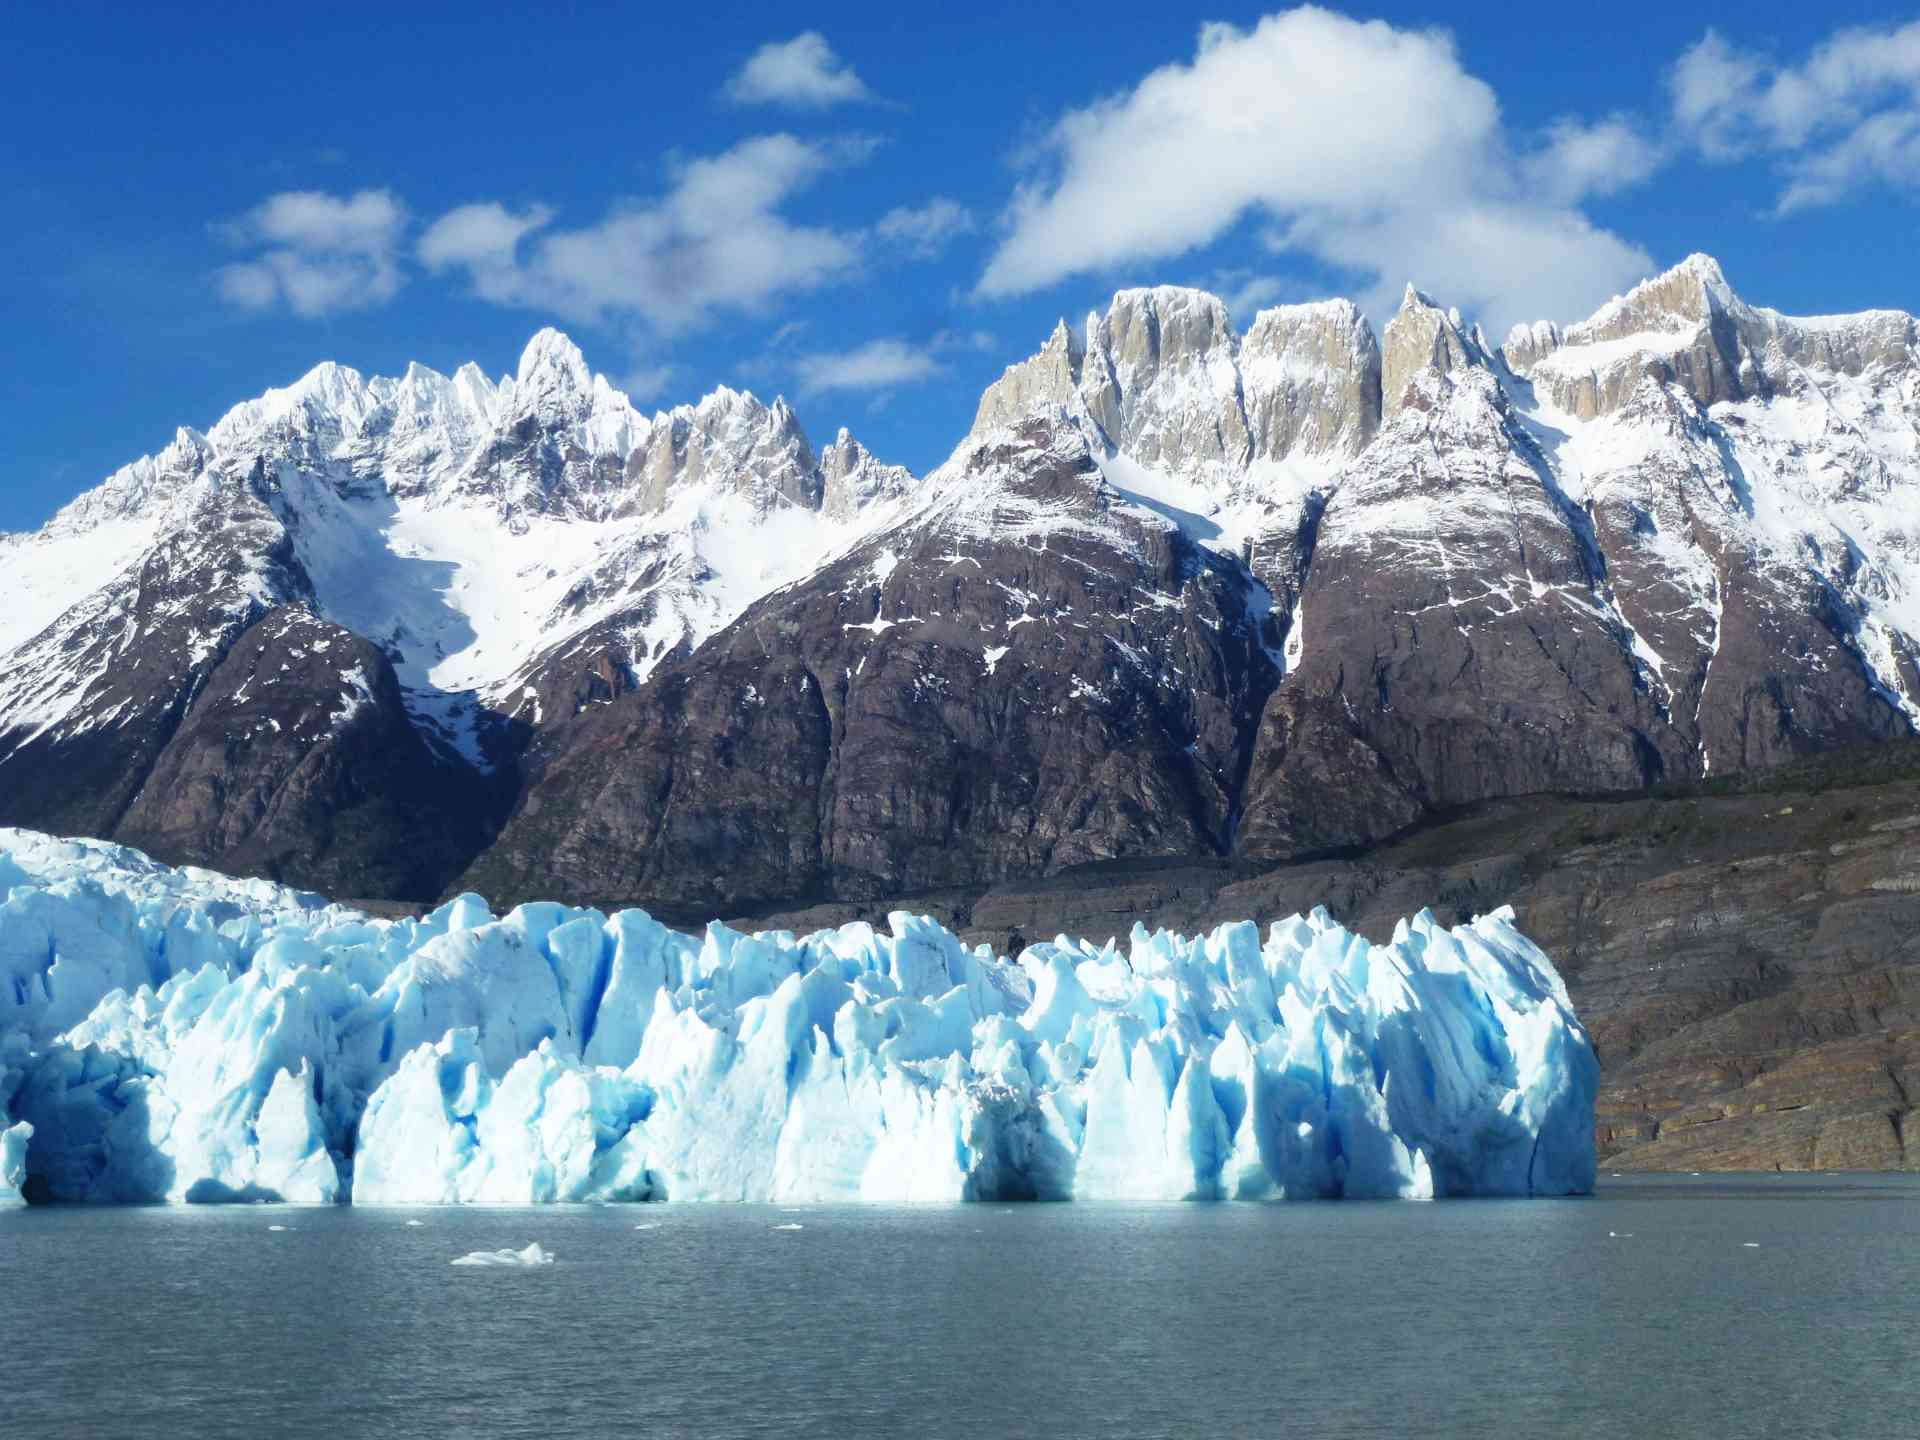 Grey Glacier in Torres del Paine National Park, Chile by James Atwell